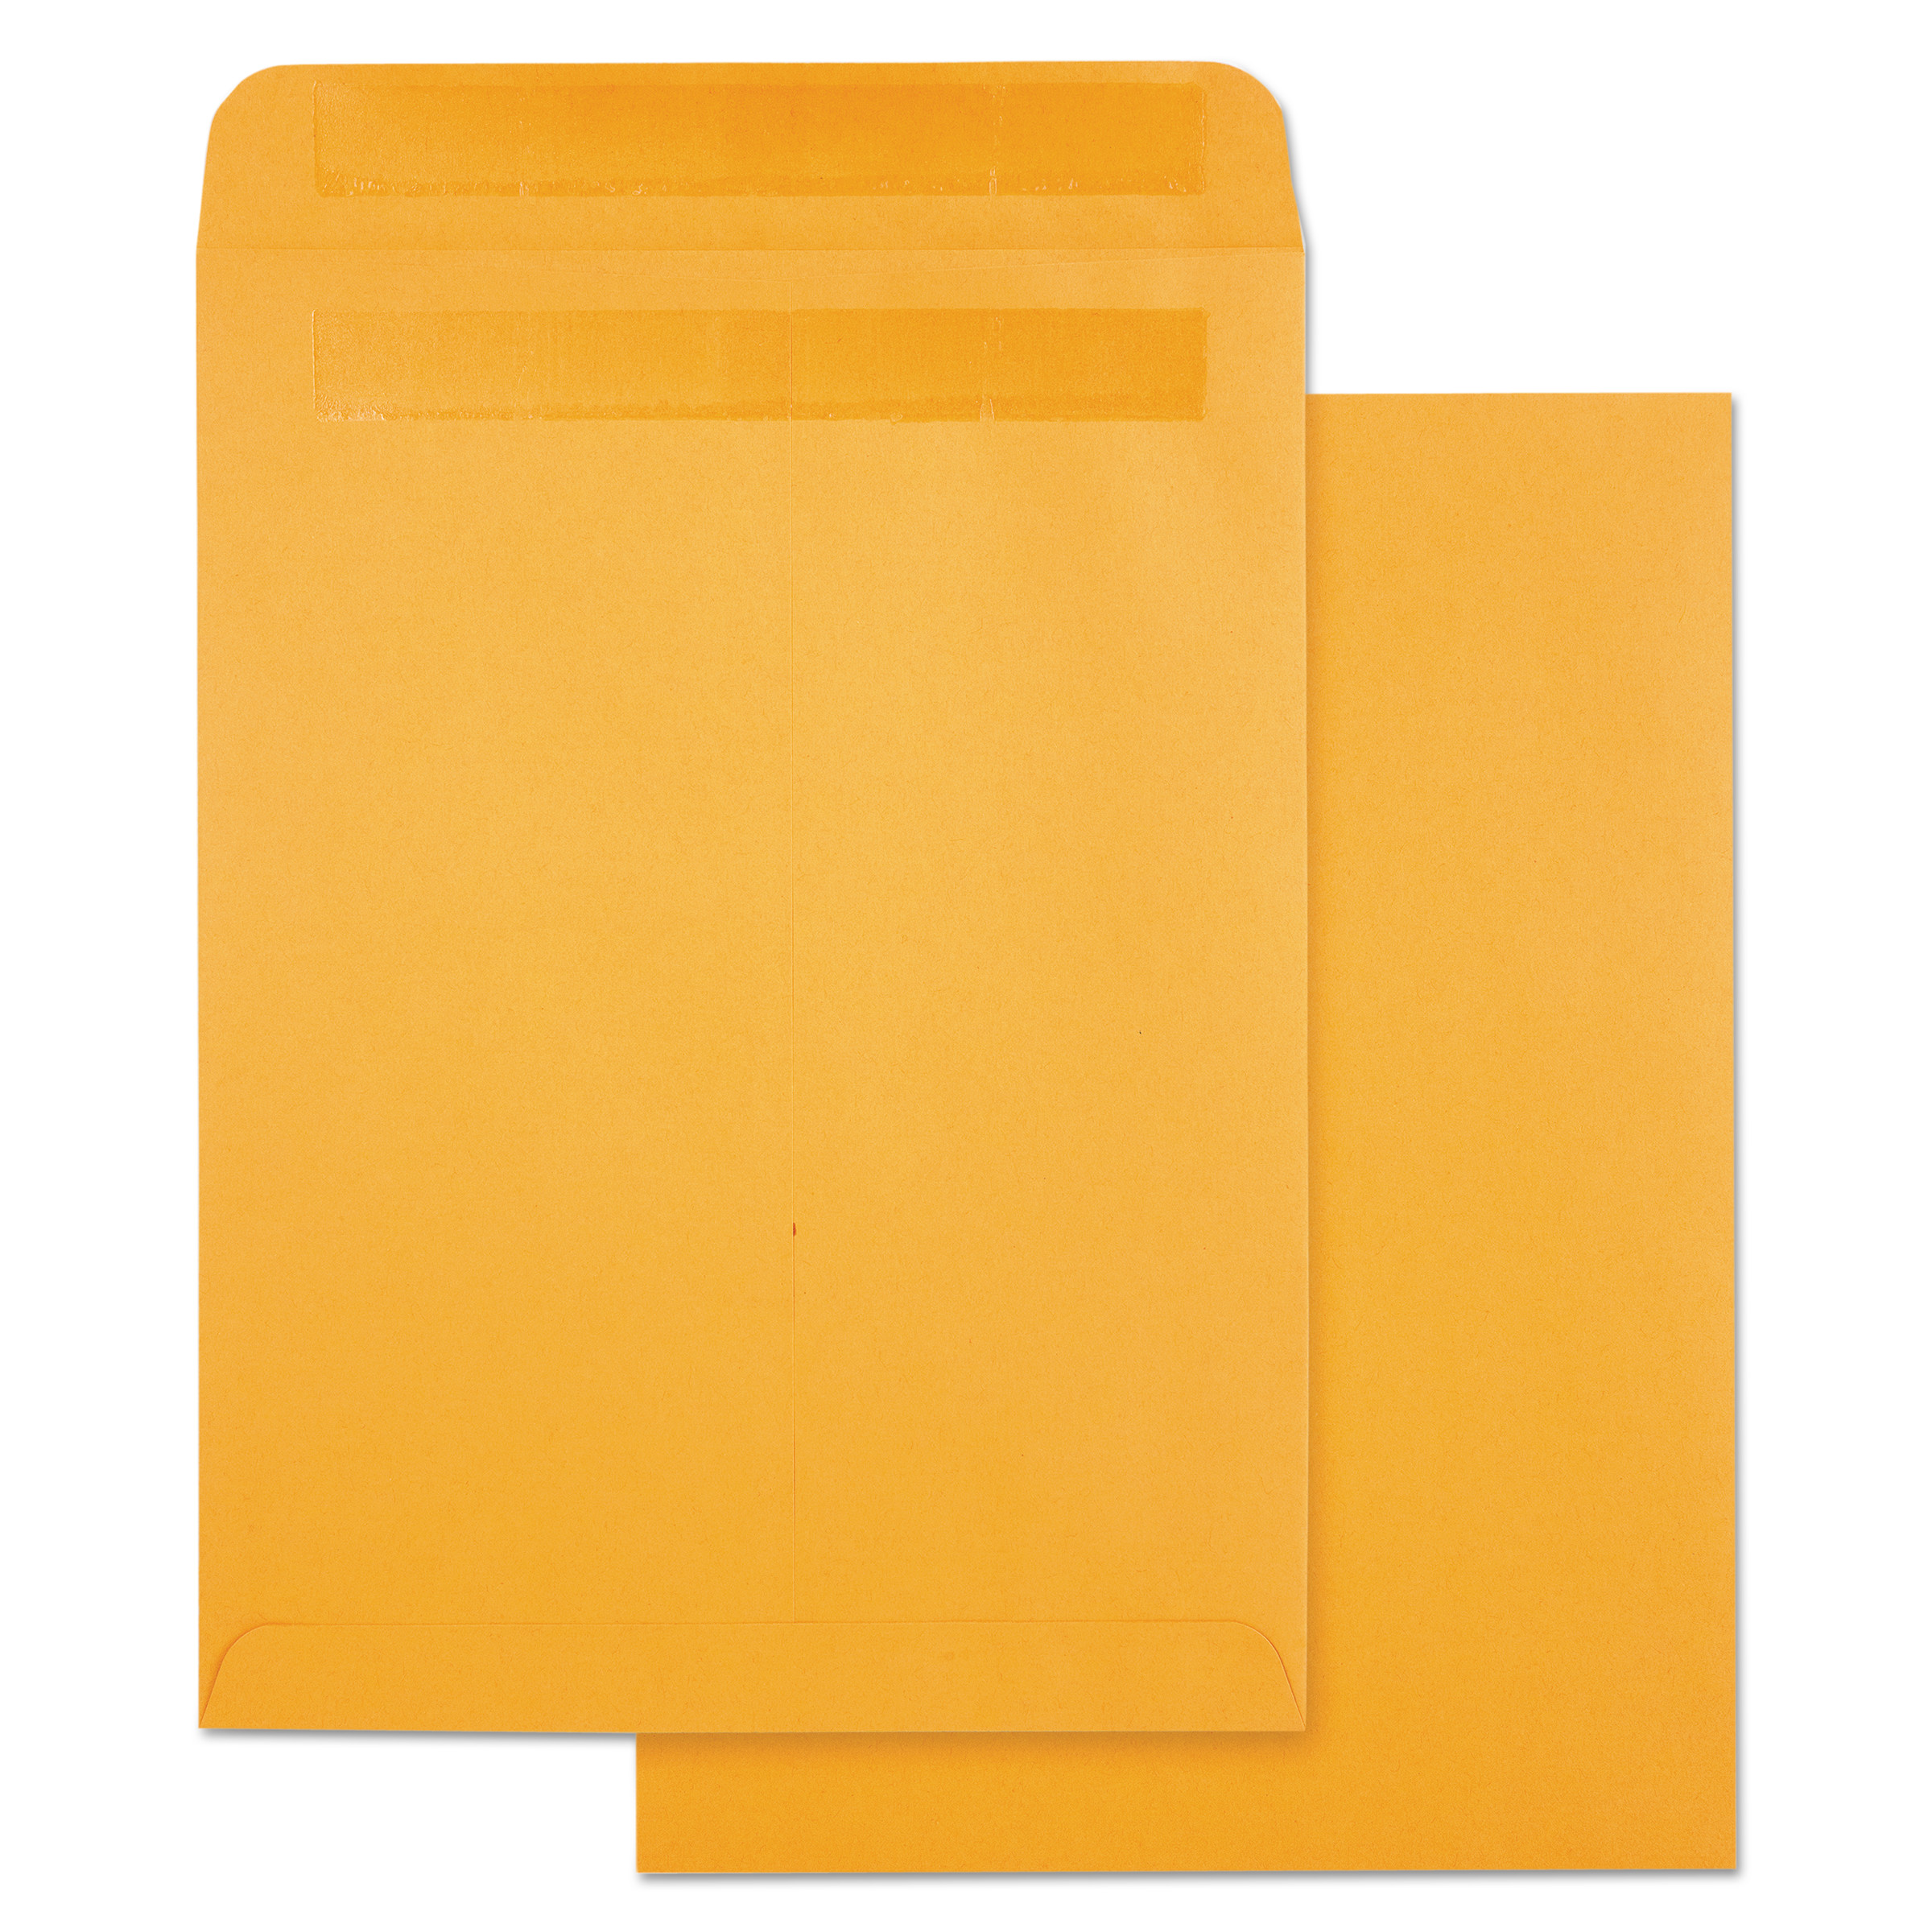 Quality Park High Bulk Self Sealing Envelopes, 9 x 12, Kraft, 100 per box -QUA43563